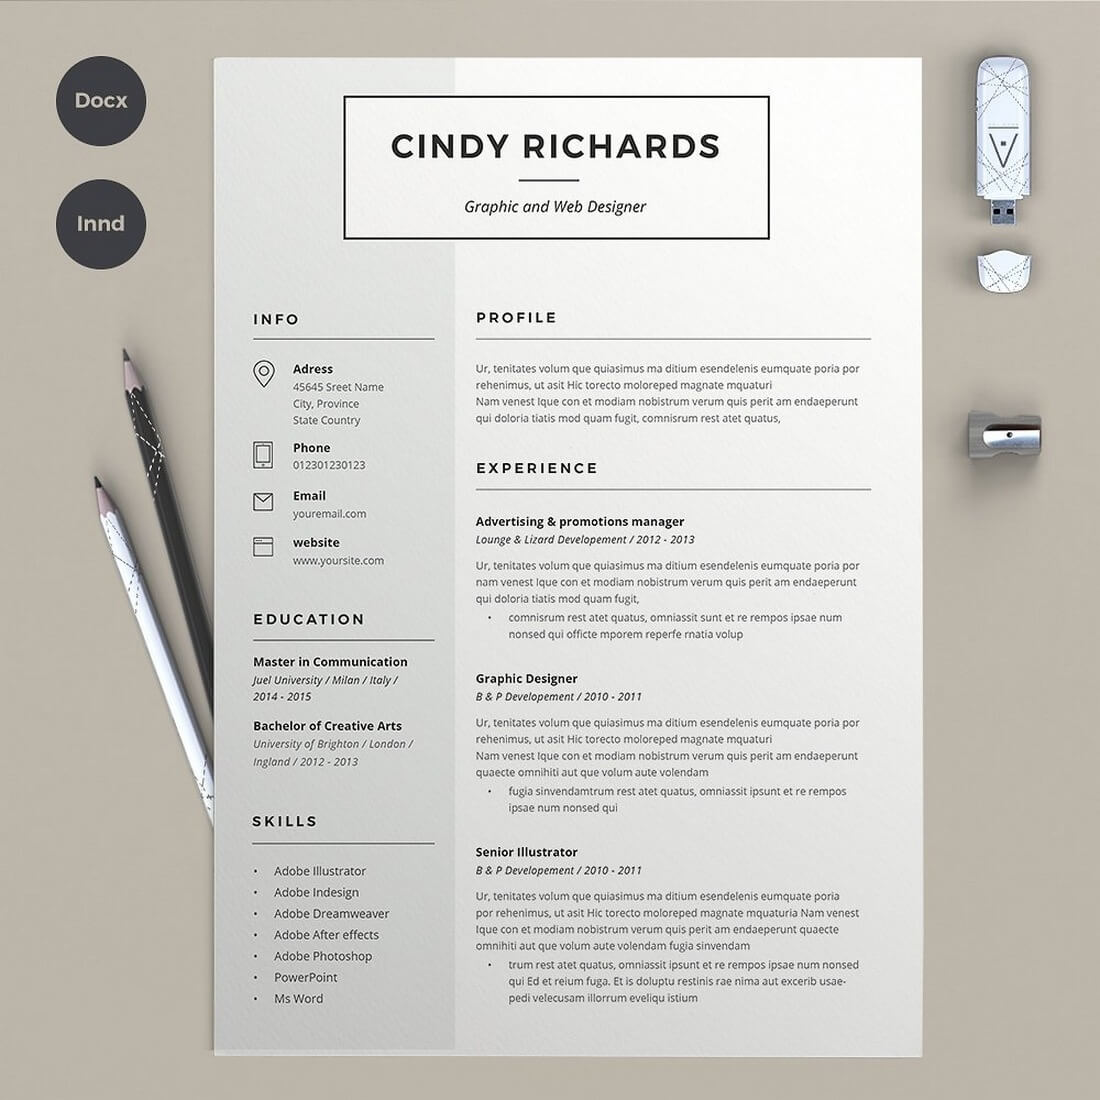 Awesome 1 Page Resume Format Download Tiny 1 Page Resume Or 2 Rectangular 1 Year Experience Java Resume Format 11x17 Graph Paper Template Young 15 Year Old Funny Resume Orange15 Year Old Student Resume Ideal Resume For Mid Level Employee   Business Insider